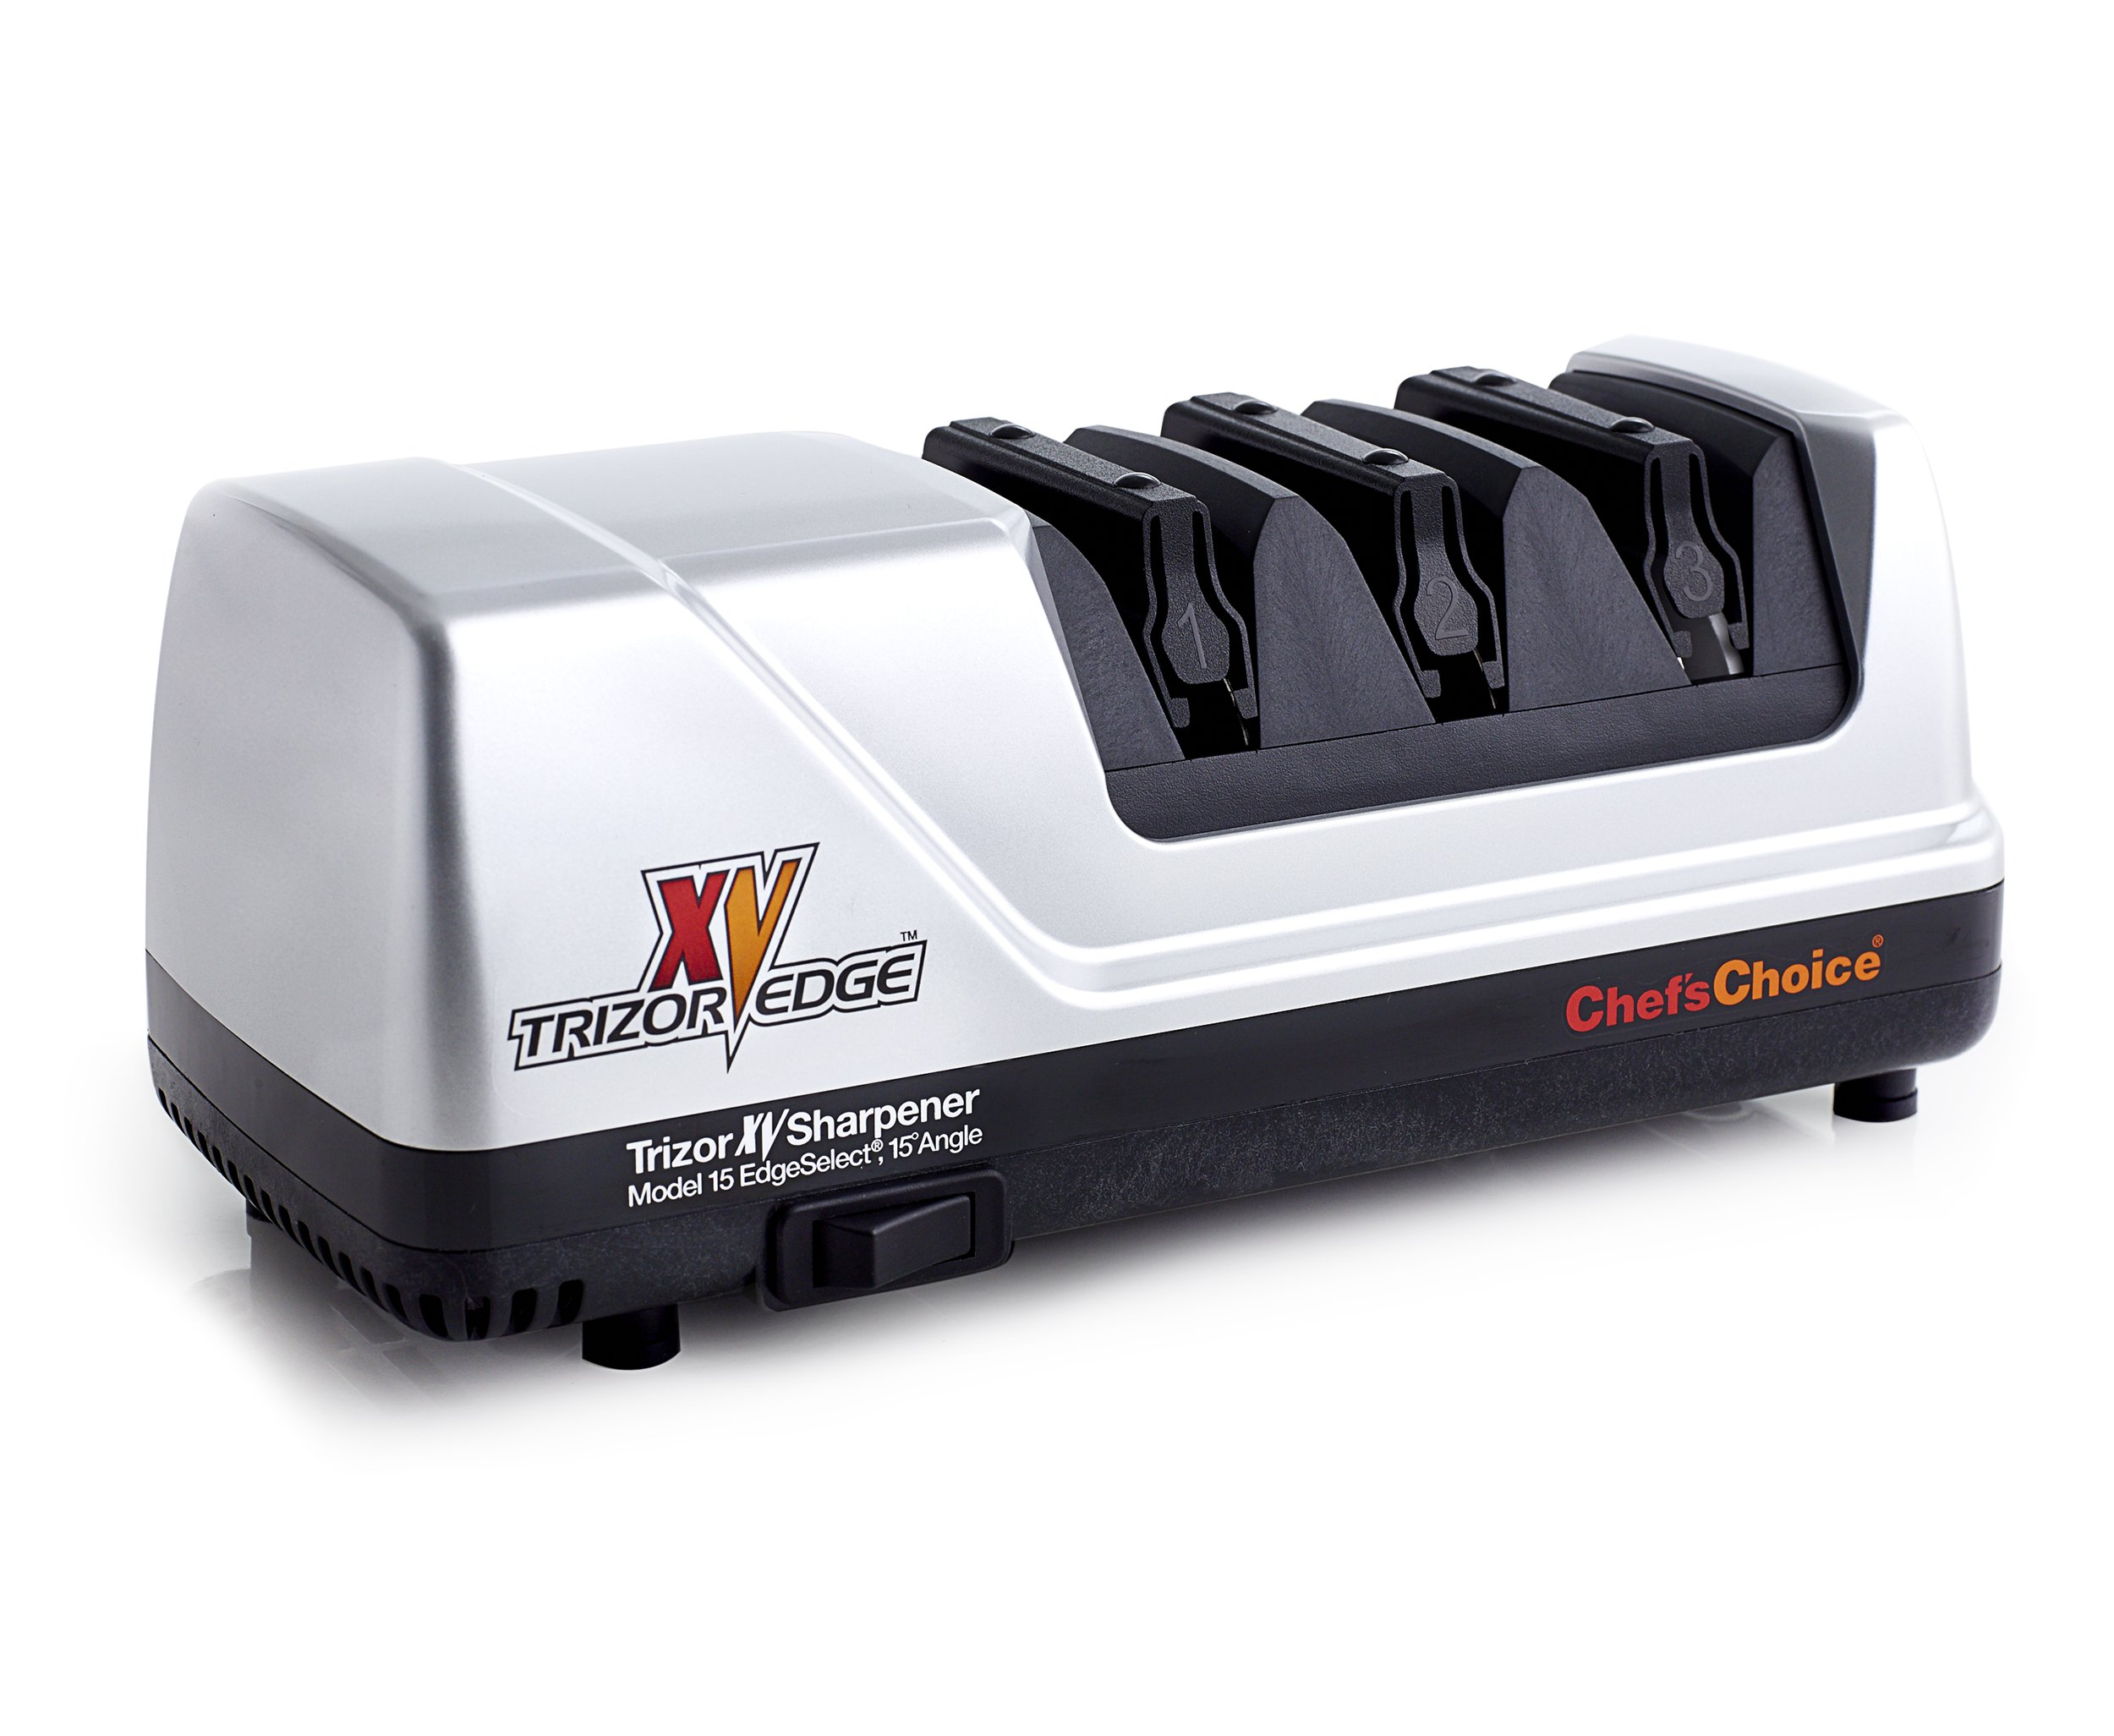 Chef's Choice 15 Trizor XV EdgeSelect Electric Knife Sharpener, Platinum by Chef'sChoice (Image #7)